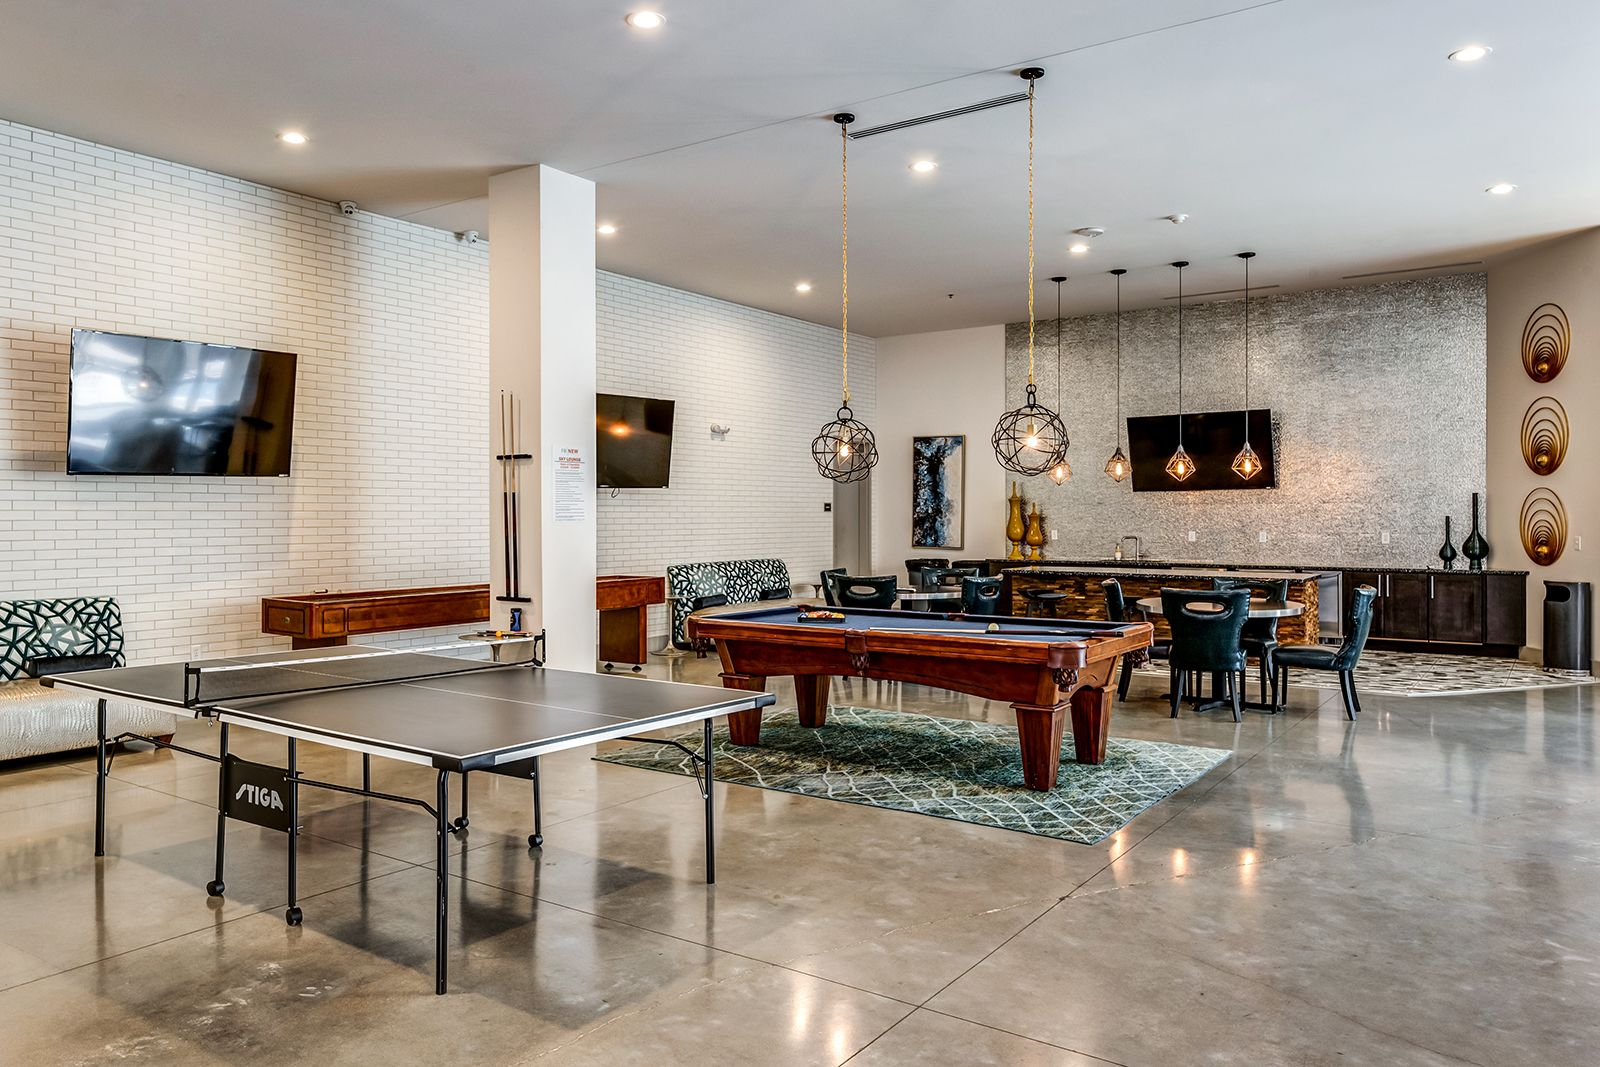 Challenge your fellow residents to a game of pool or ping